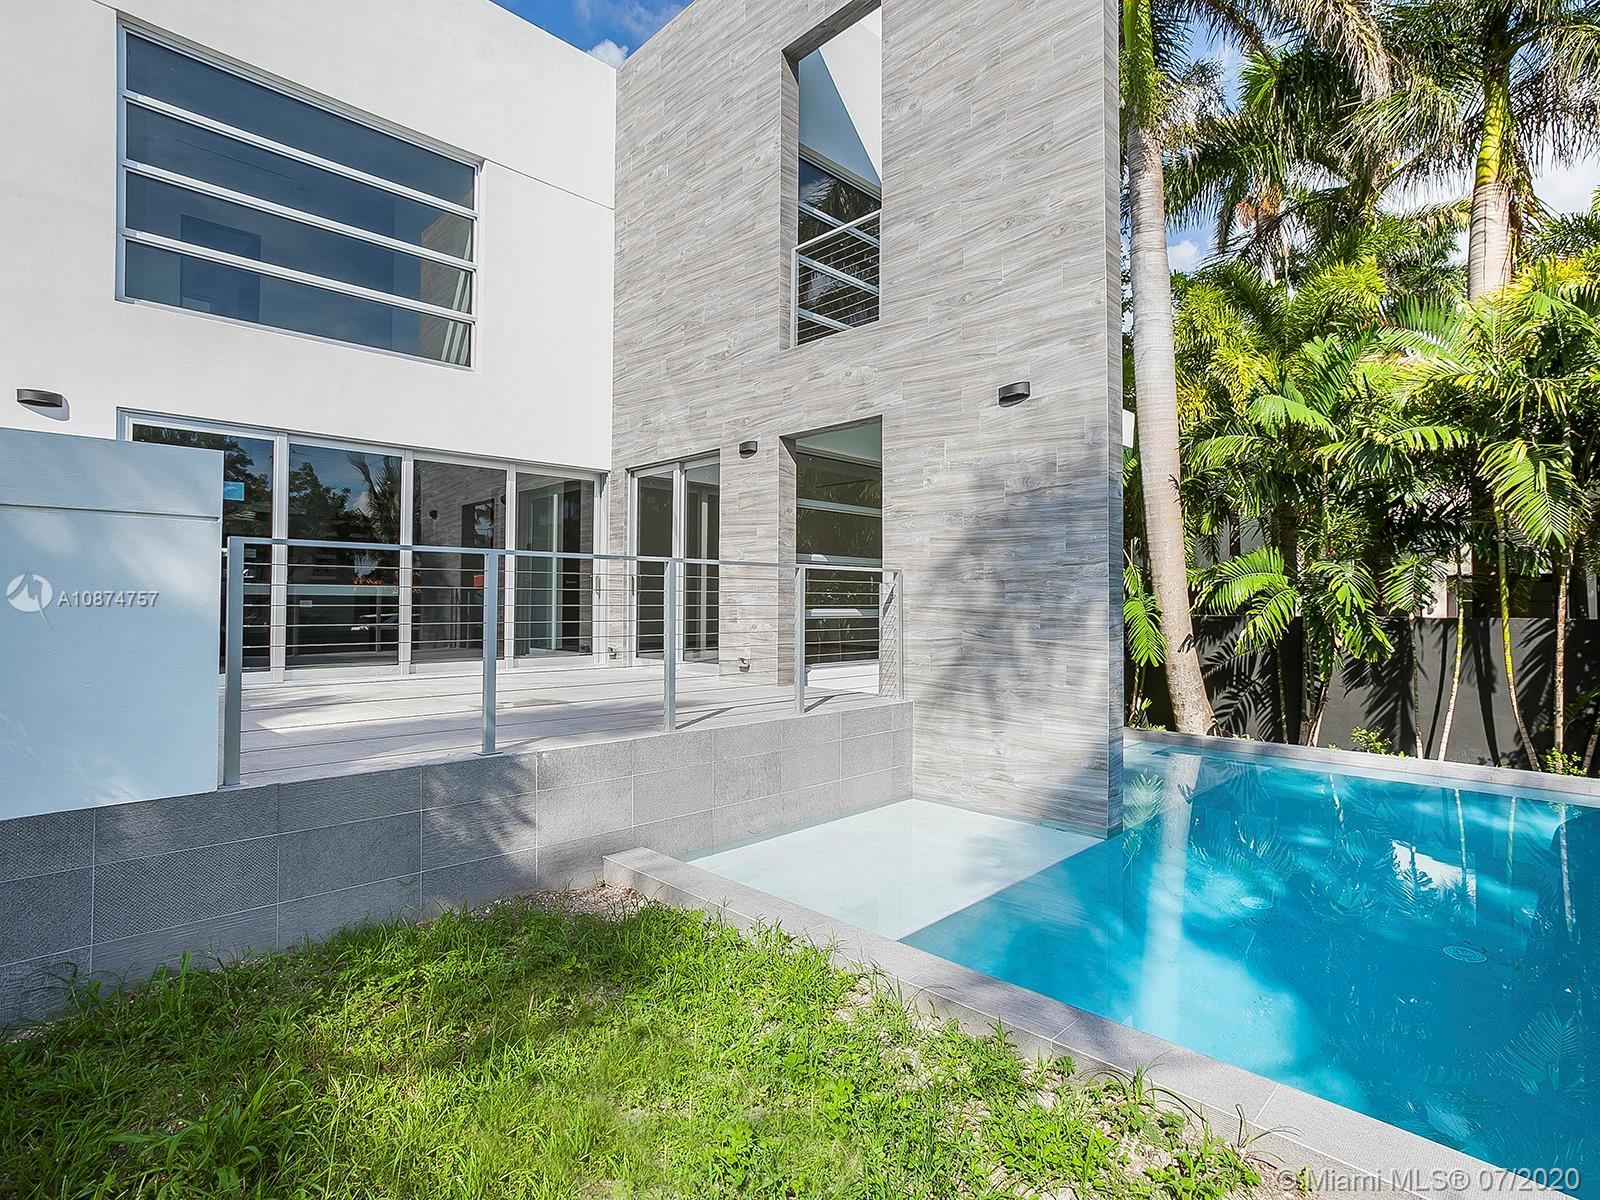 Details for 257 Palm Ave, Miami Beach, FL 33139